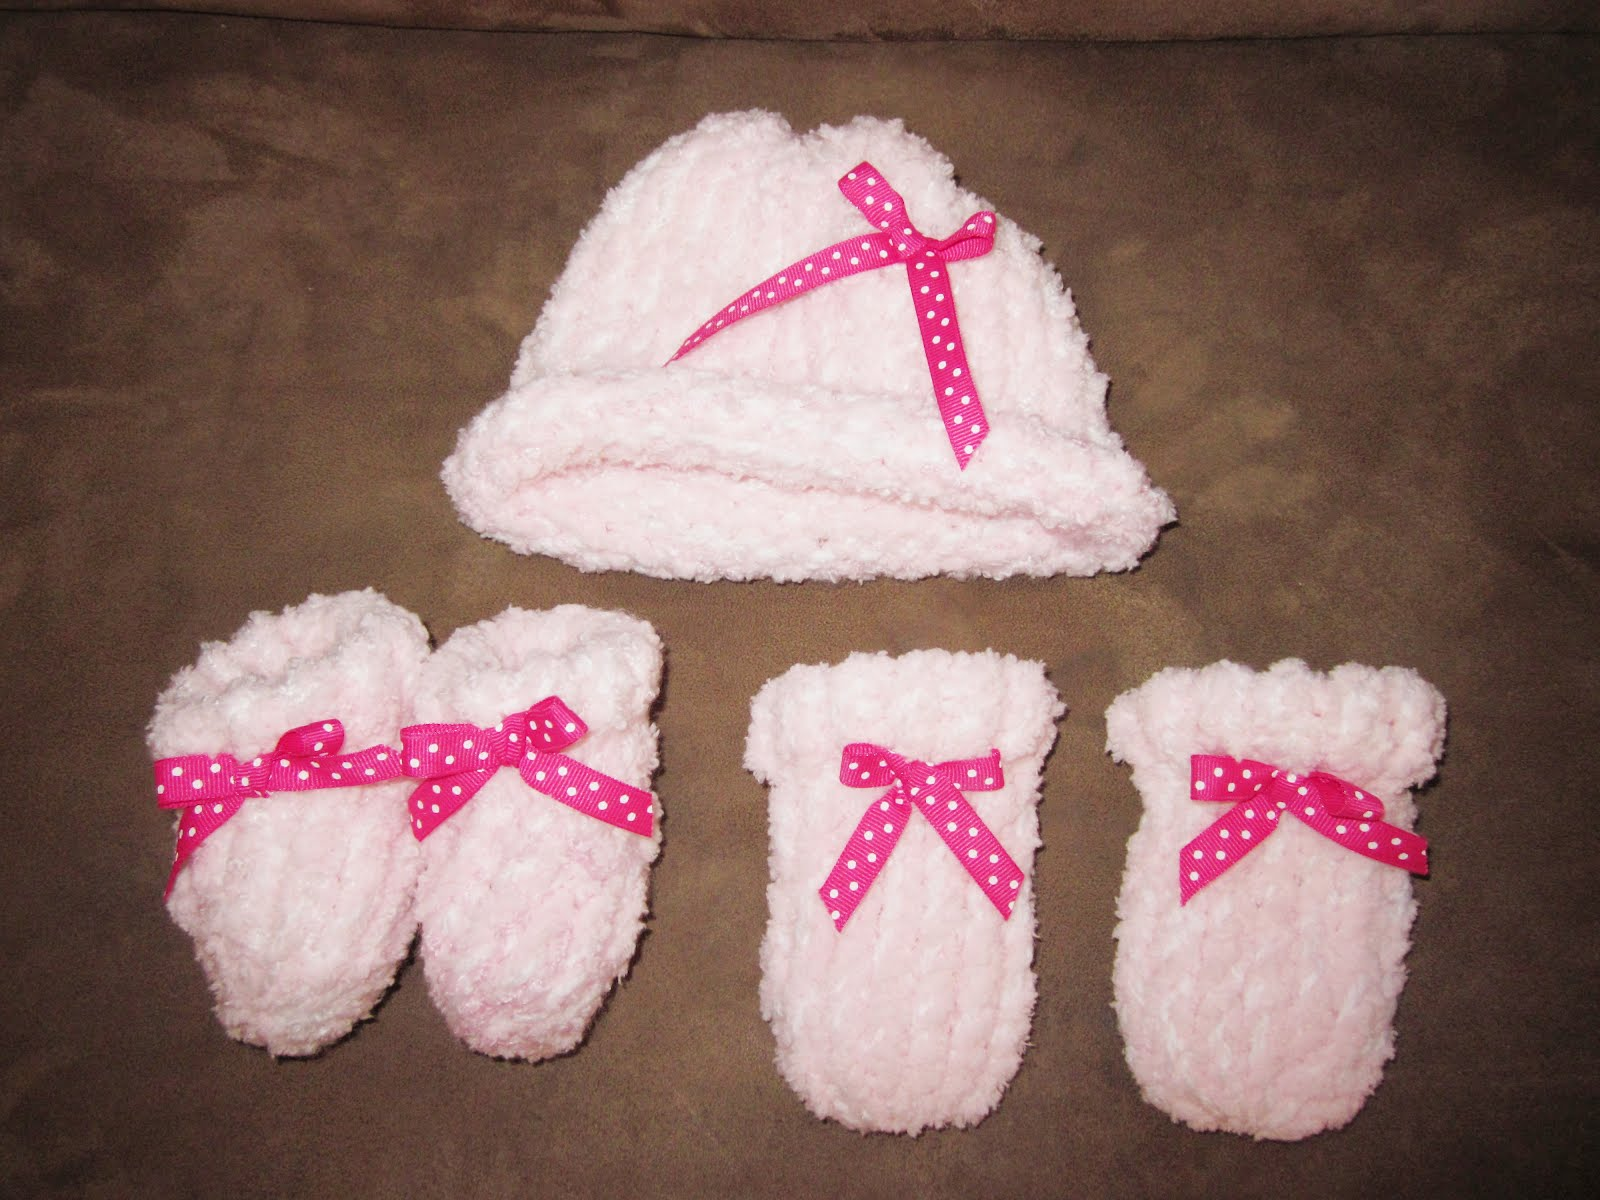 Knitting Patterns For Baby Mittens And Booties : Tricks of the Trade: Loom Knitting, Newborn Baby Hat, Newborn Baby Booties, N...